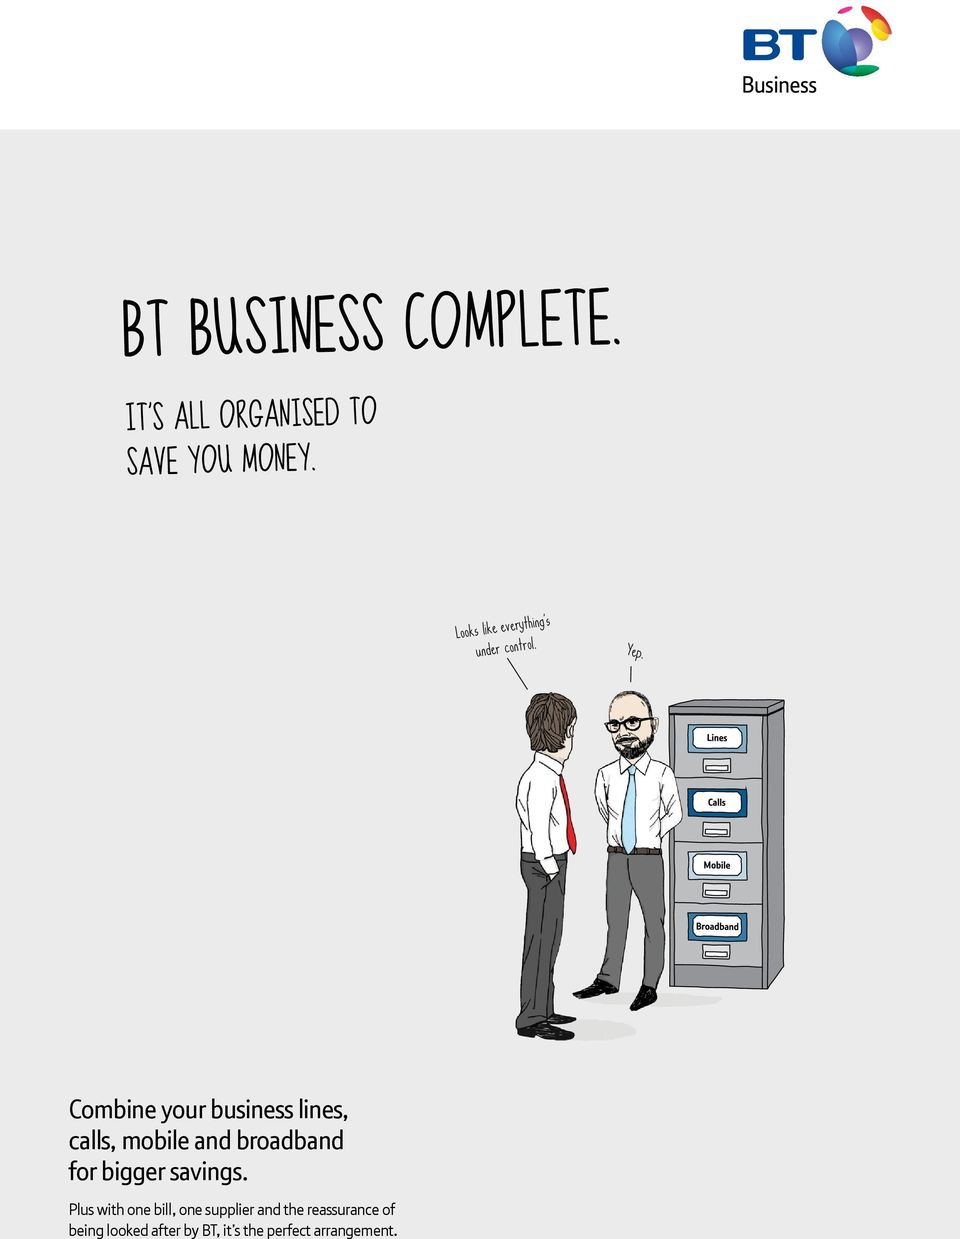 Combine your business lines, calls, mobile and broadband for bigger